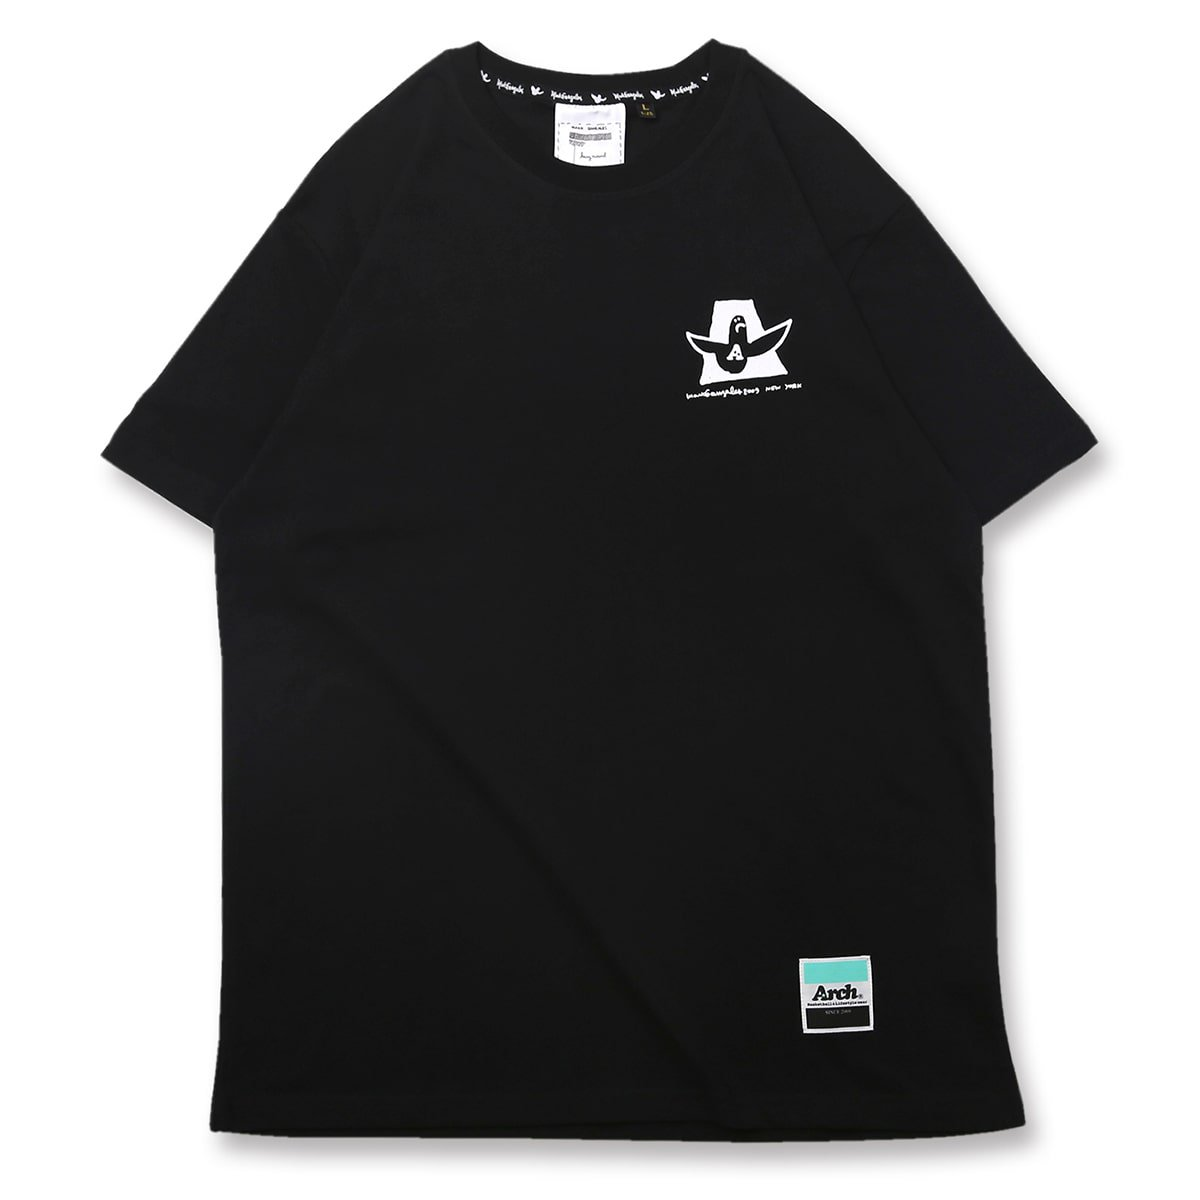 Mark Gonzales x Arch baskett ballers tee【black】